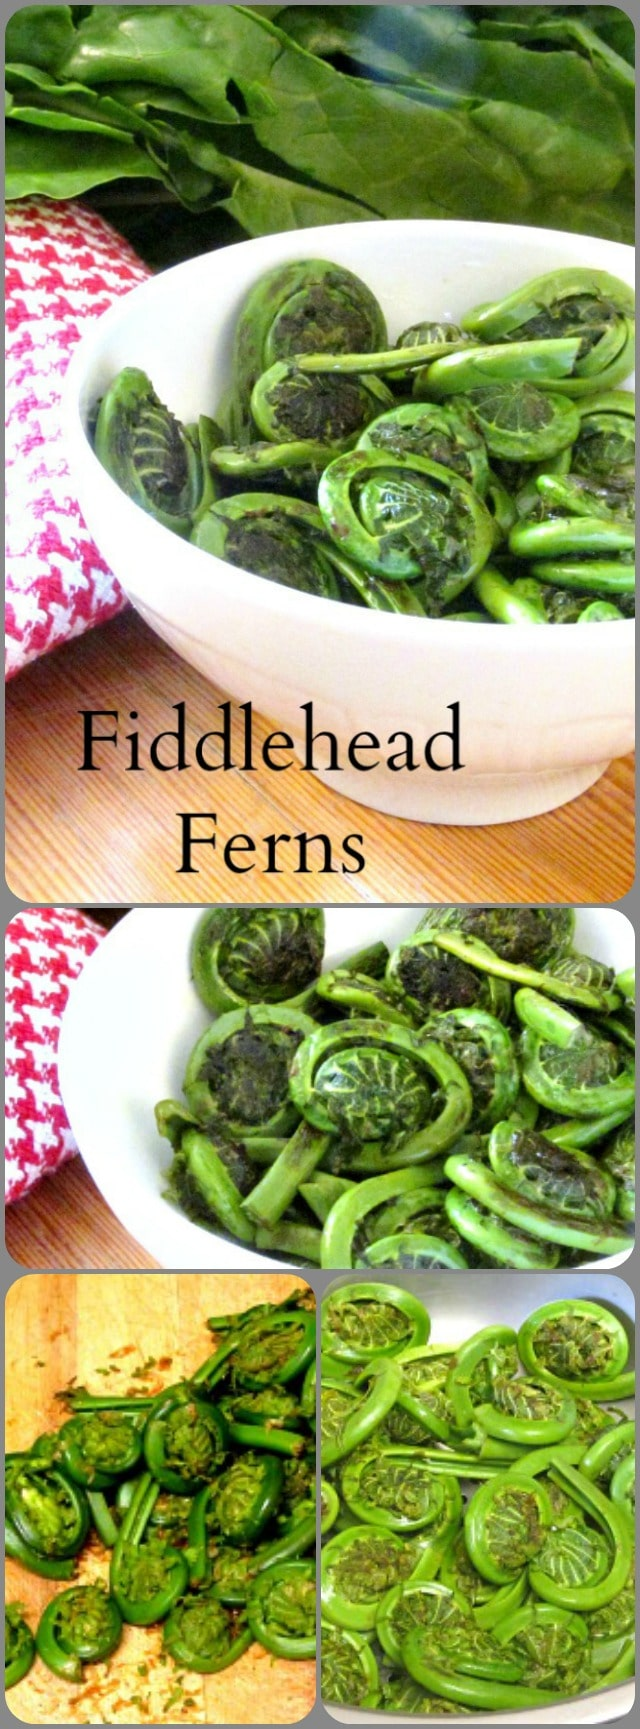 Fiddleheads - the edible and delicious unopened fronds of a wild fern. Harvested for a few short weeks in late Spring, they are sold in farmer's markets.